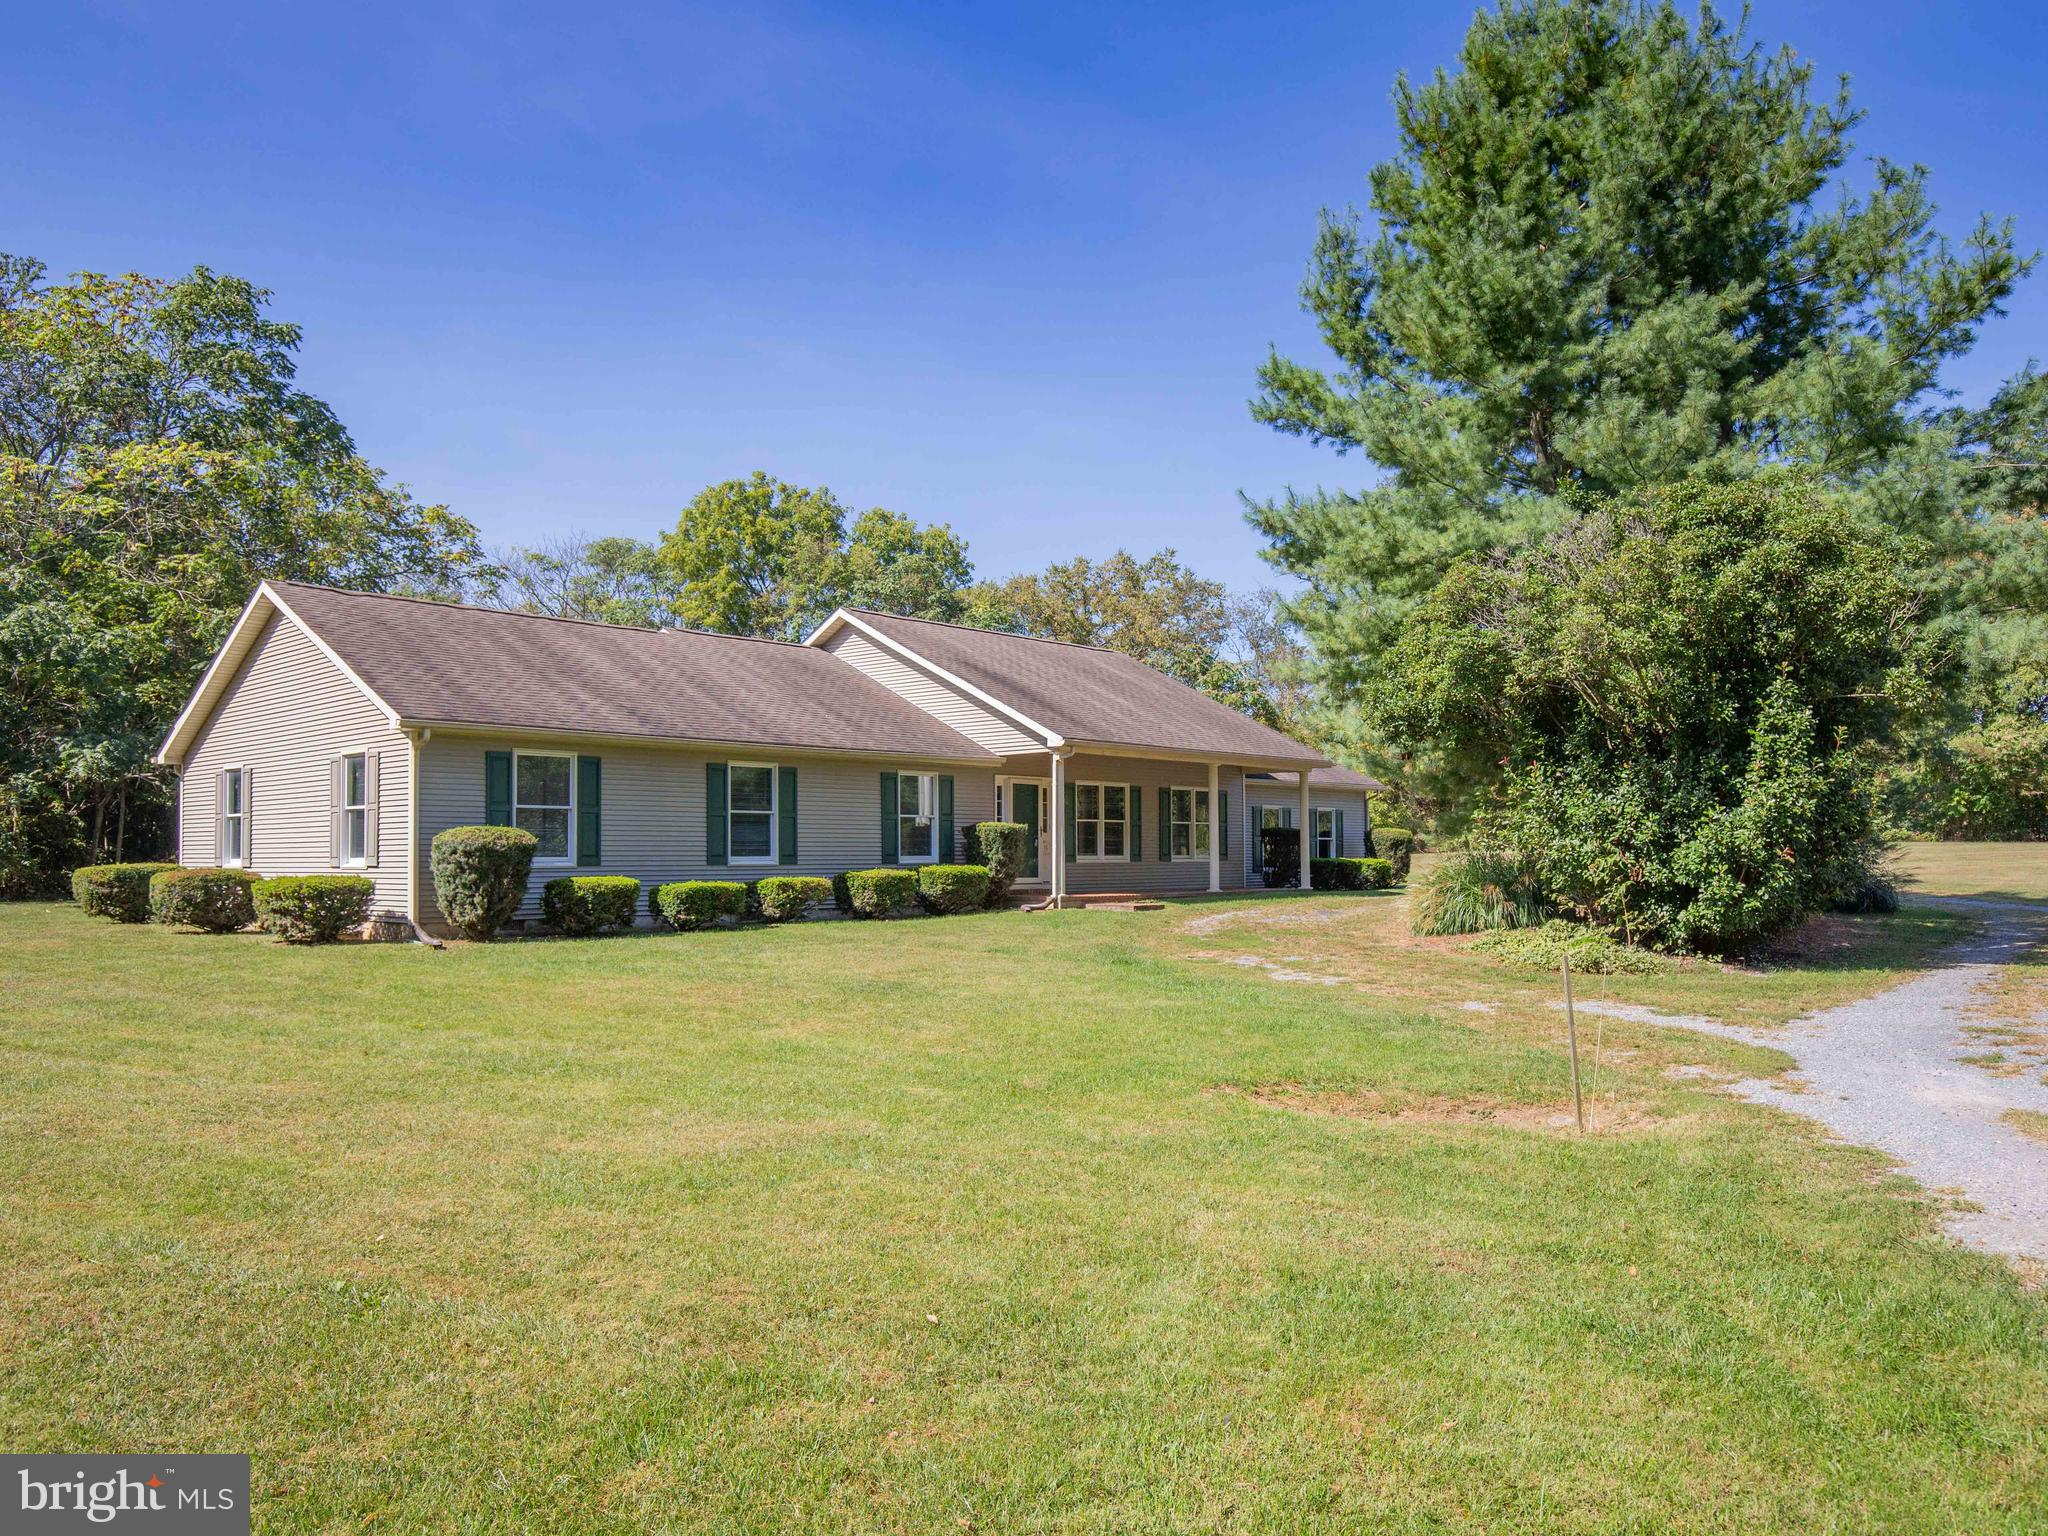 19 GEMINI WAY, SUMMIT POINT, WV 25446